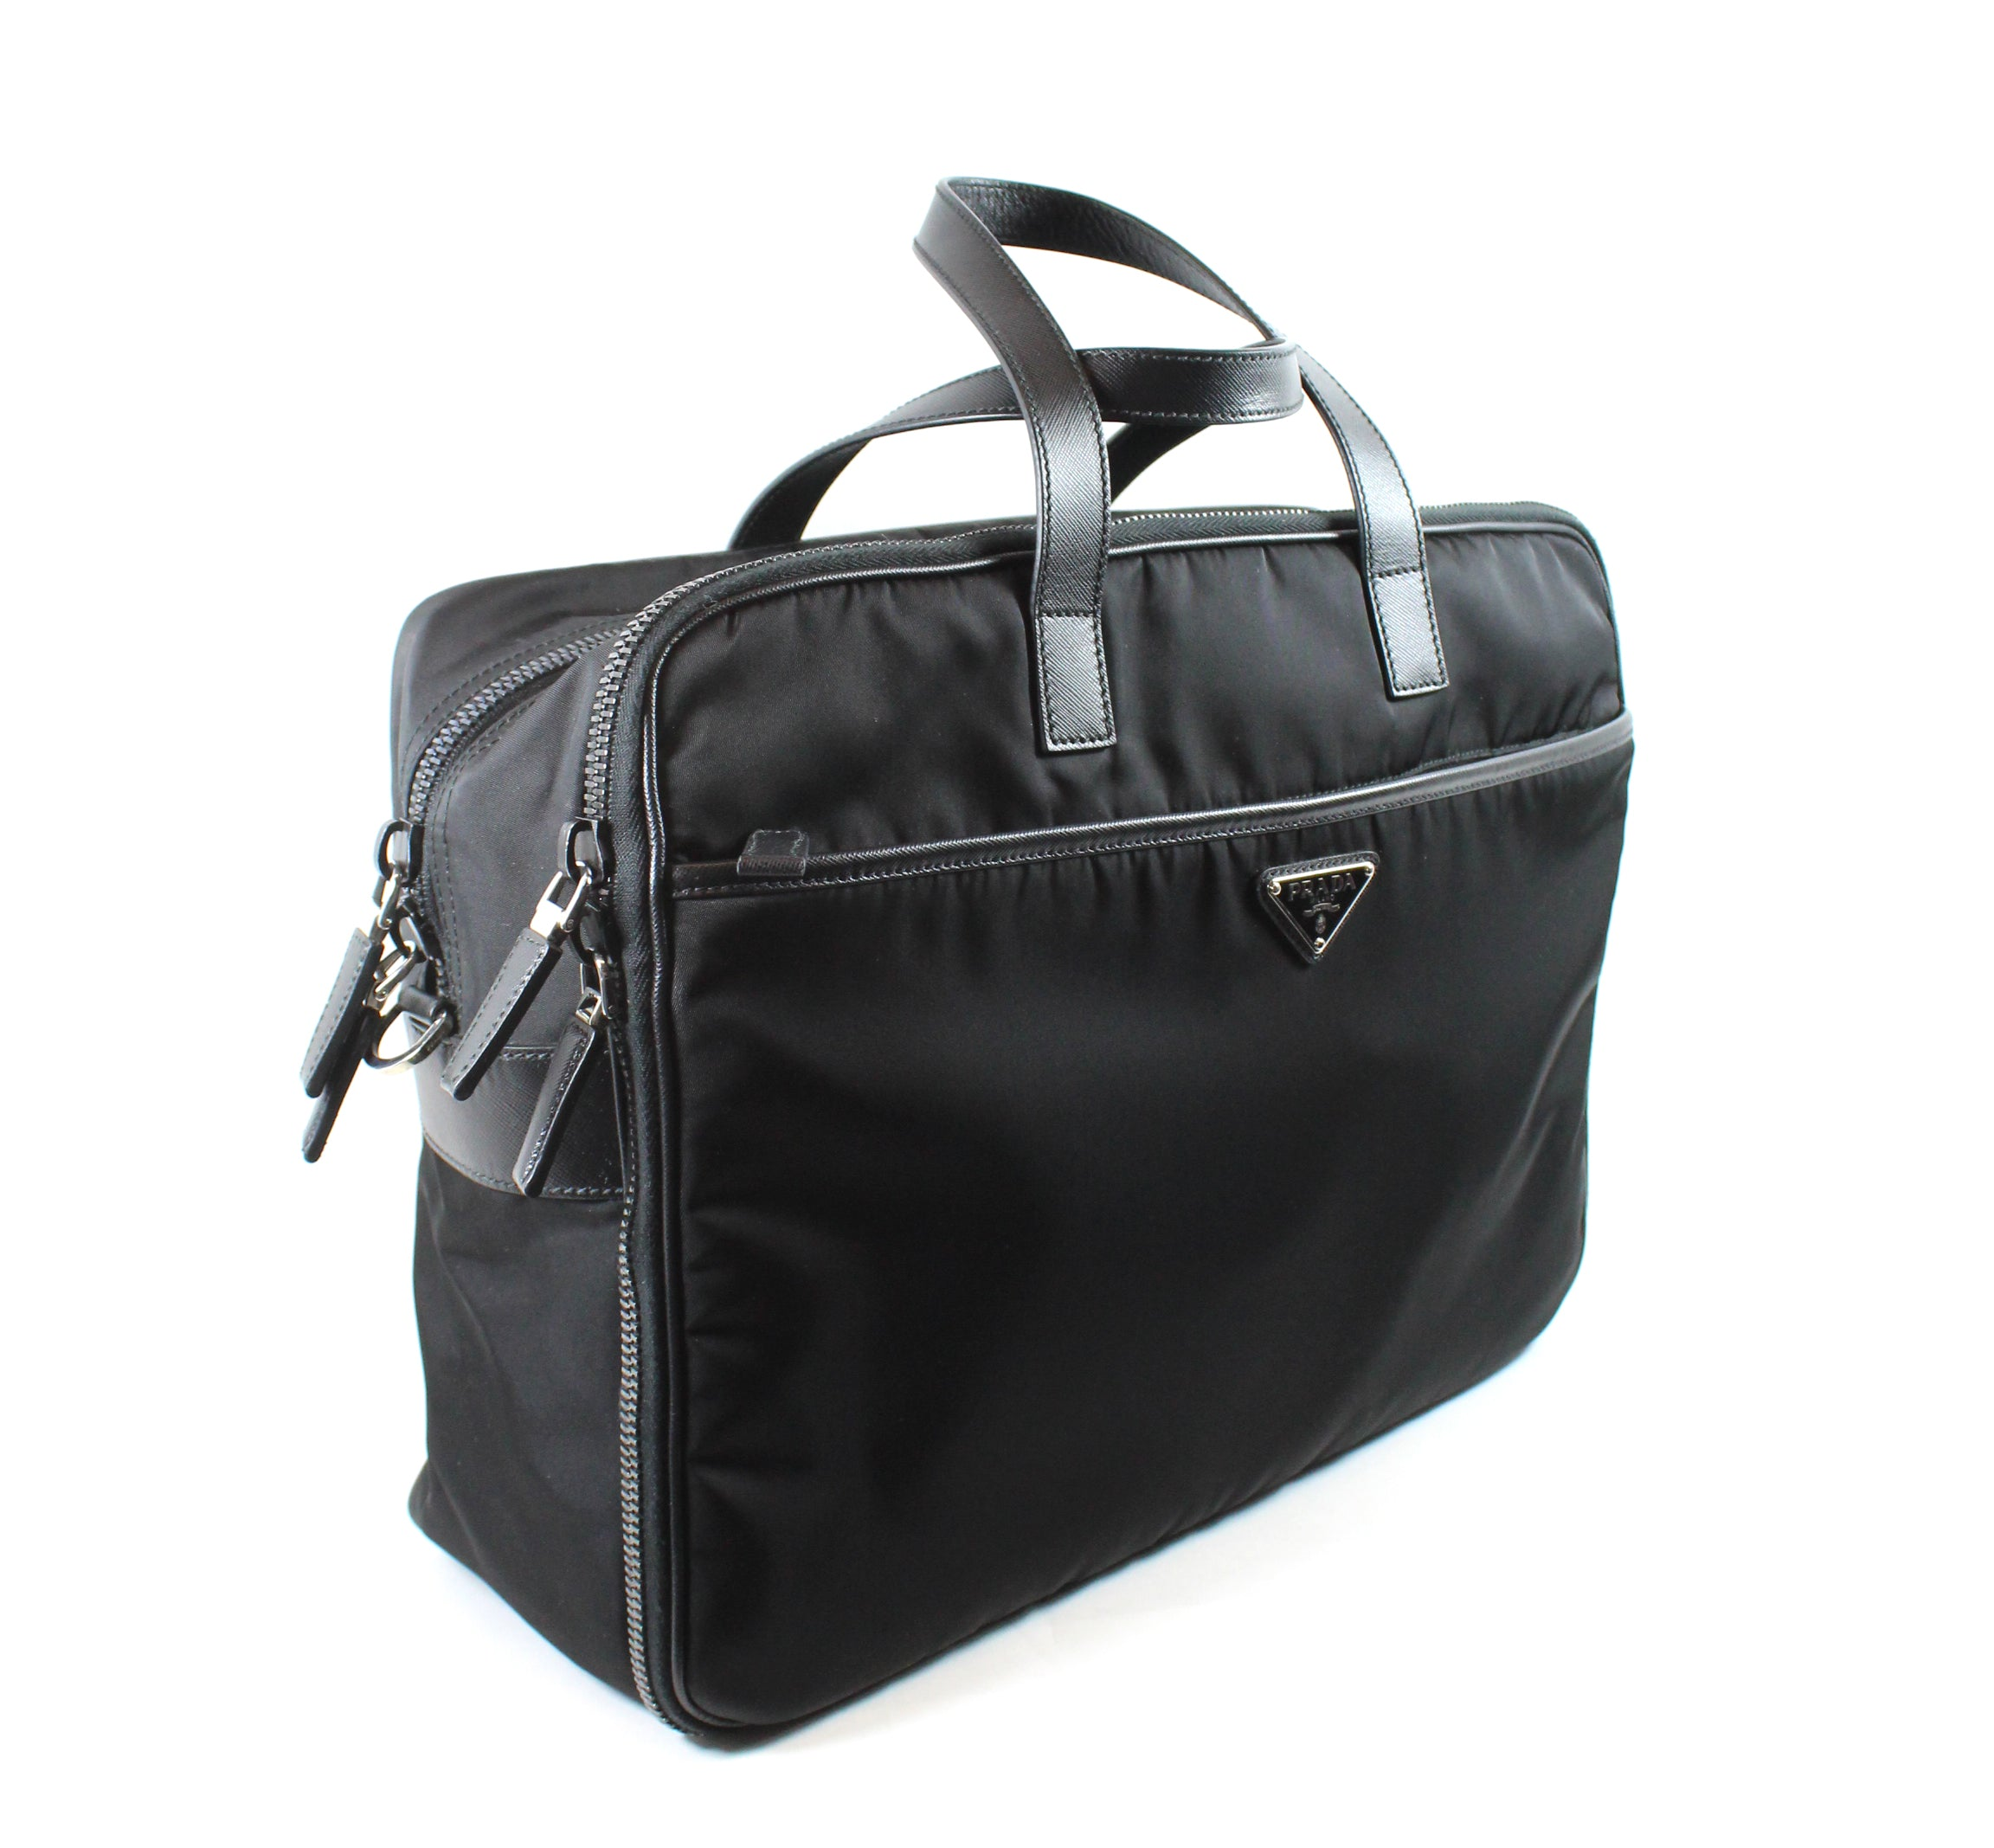 Prada Black Saffiano Leather-trimmed Nylon Zippered Briefcase